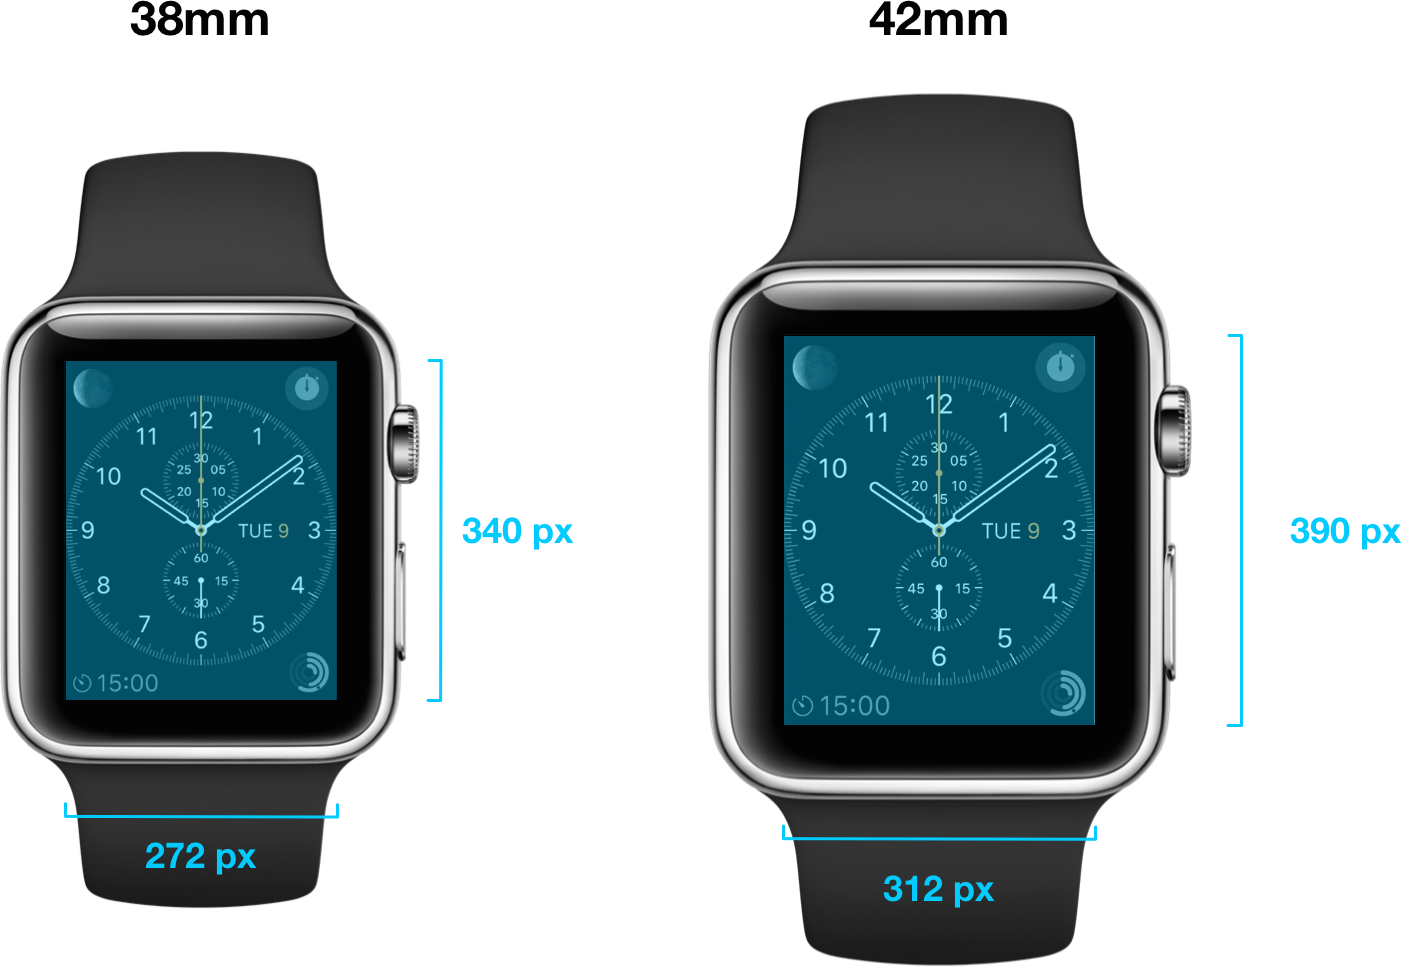 07-short-look-apple-watch-human-interface-design-guideline-ui-ux-experience-app.png